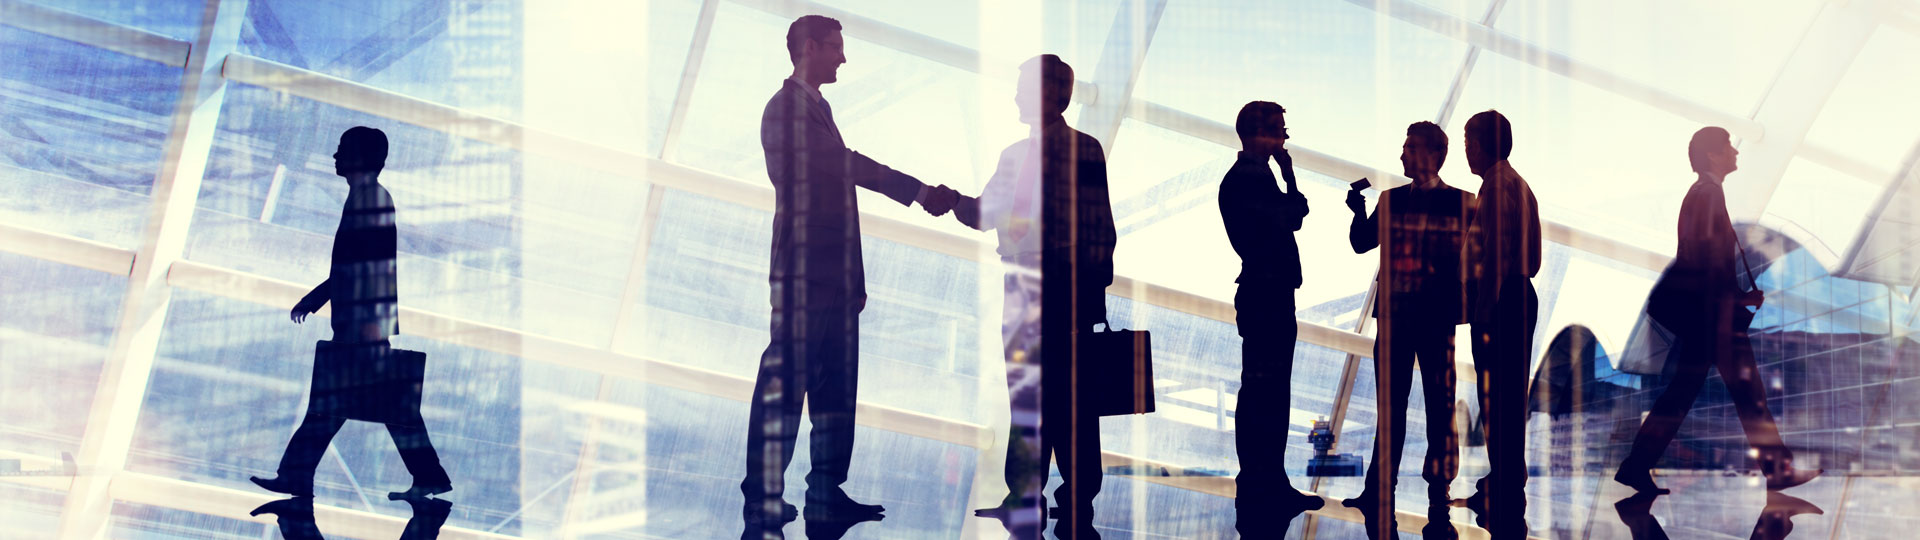 Clients shaking hands in an insurance brokers office